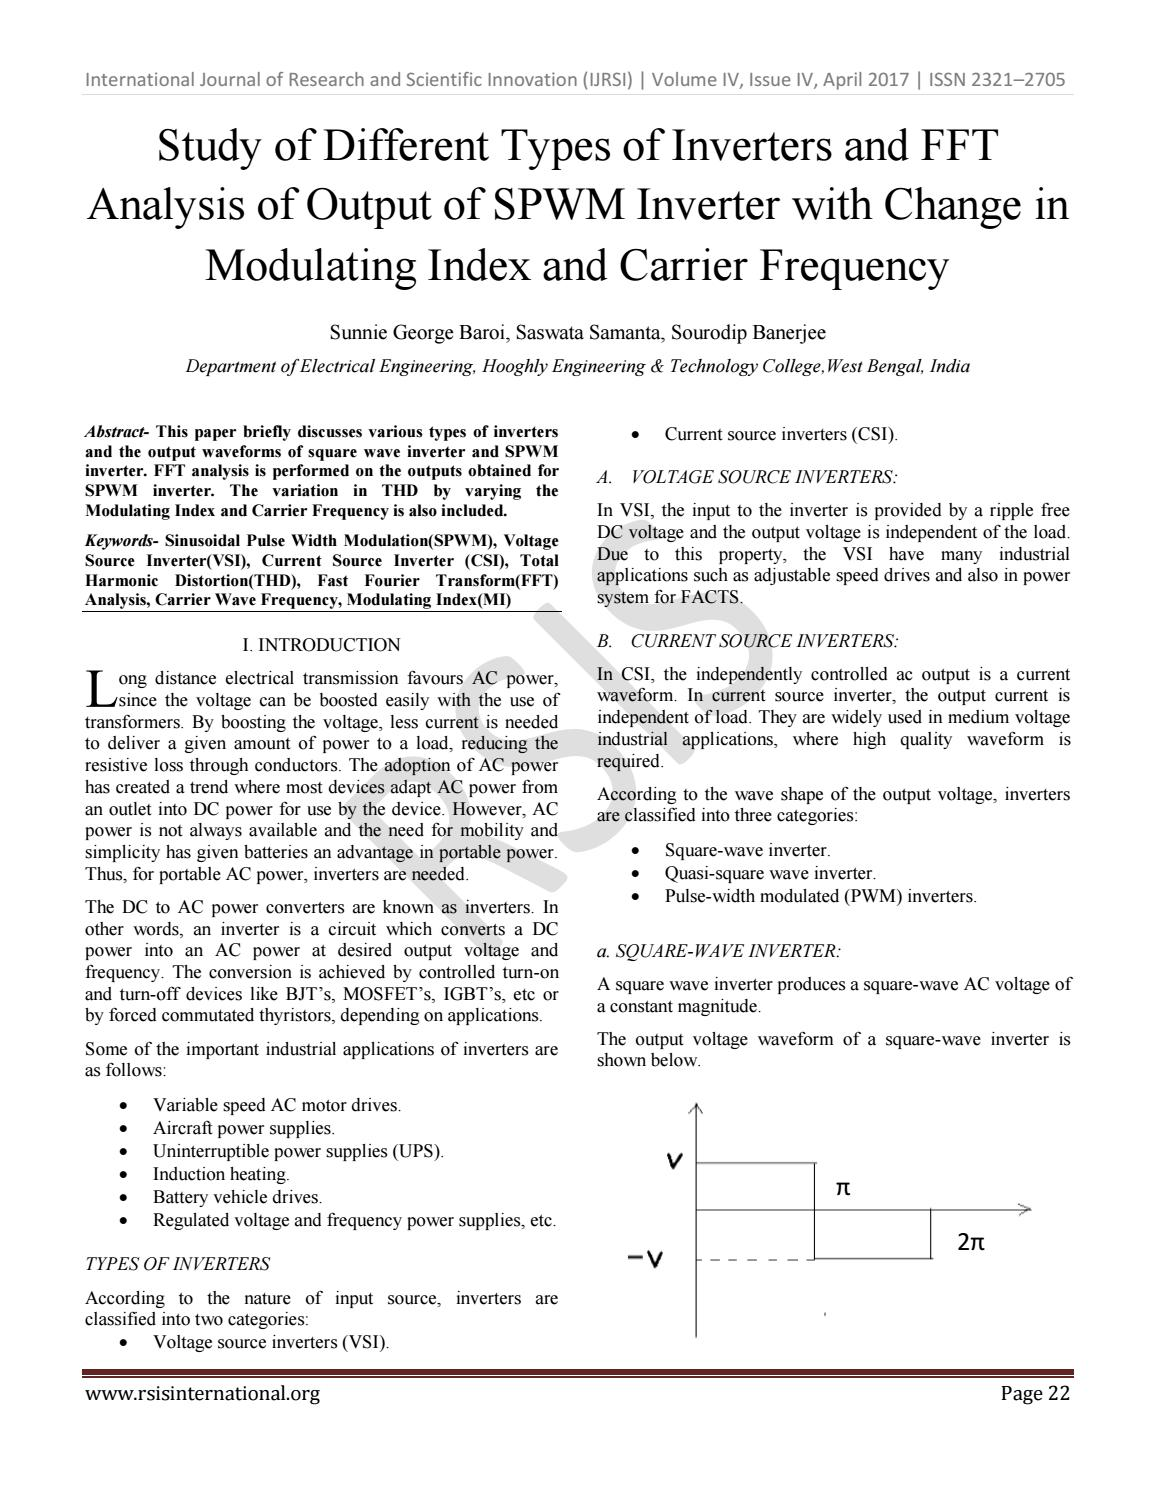 Study of Different Types of Inverters and FFT Analysis of